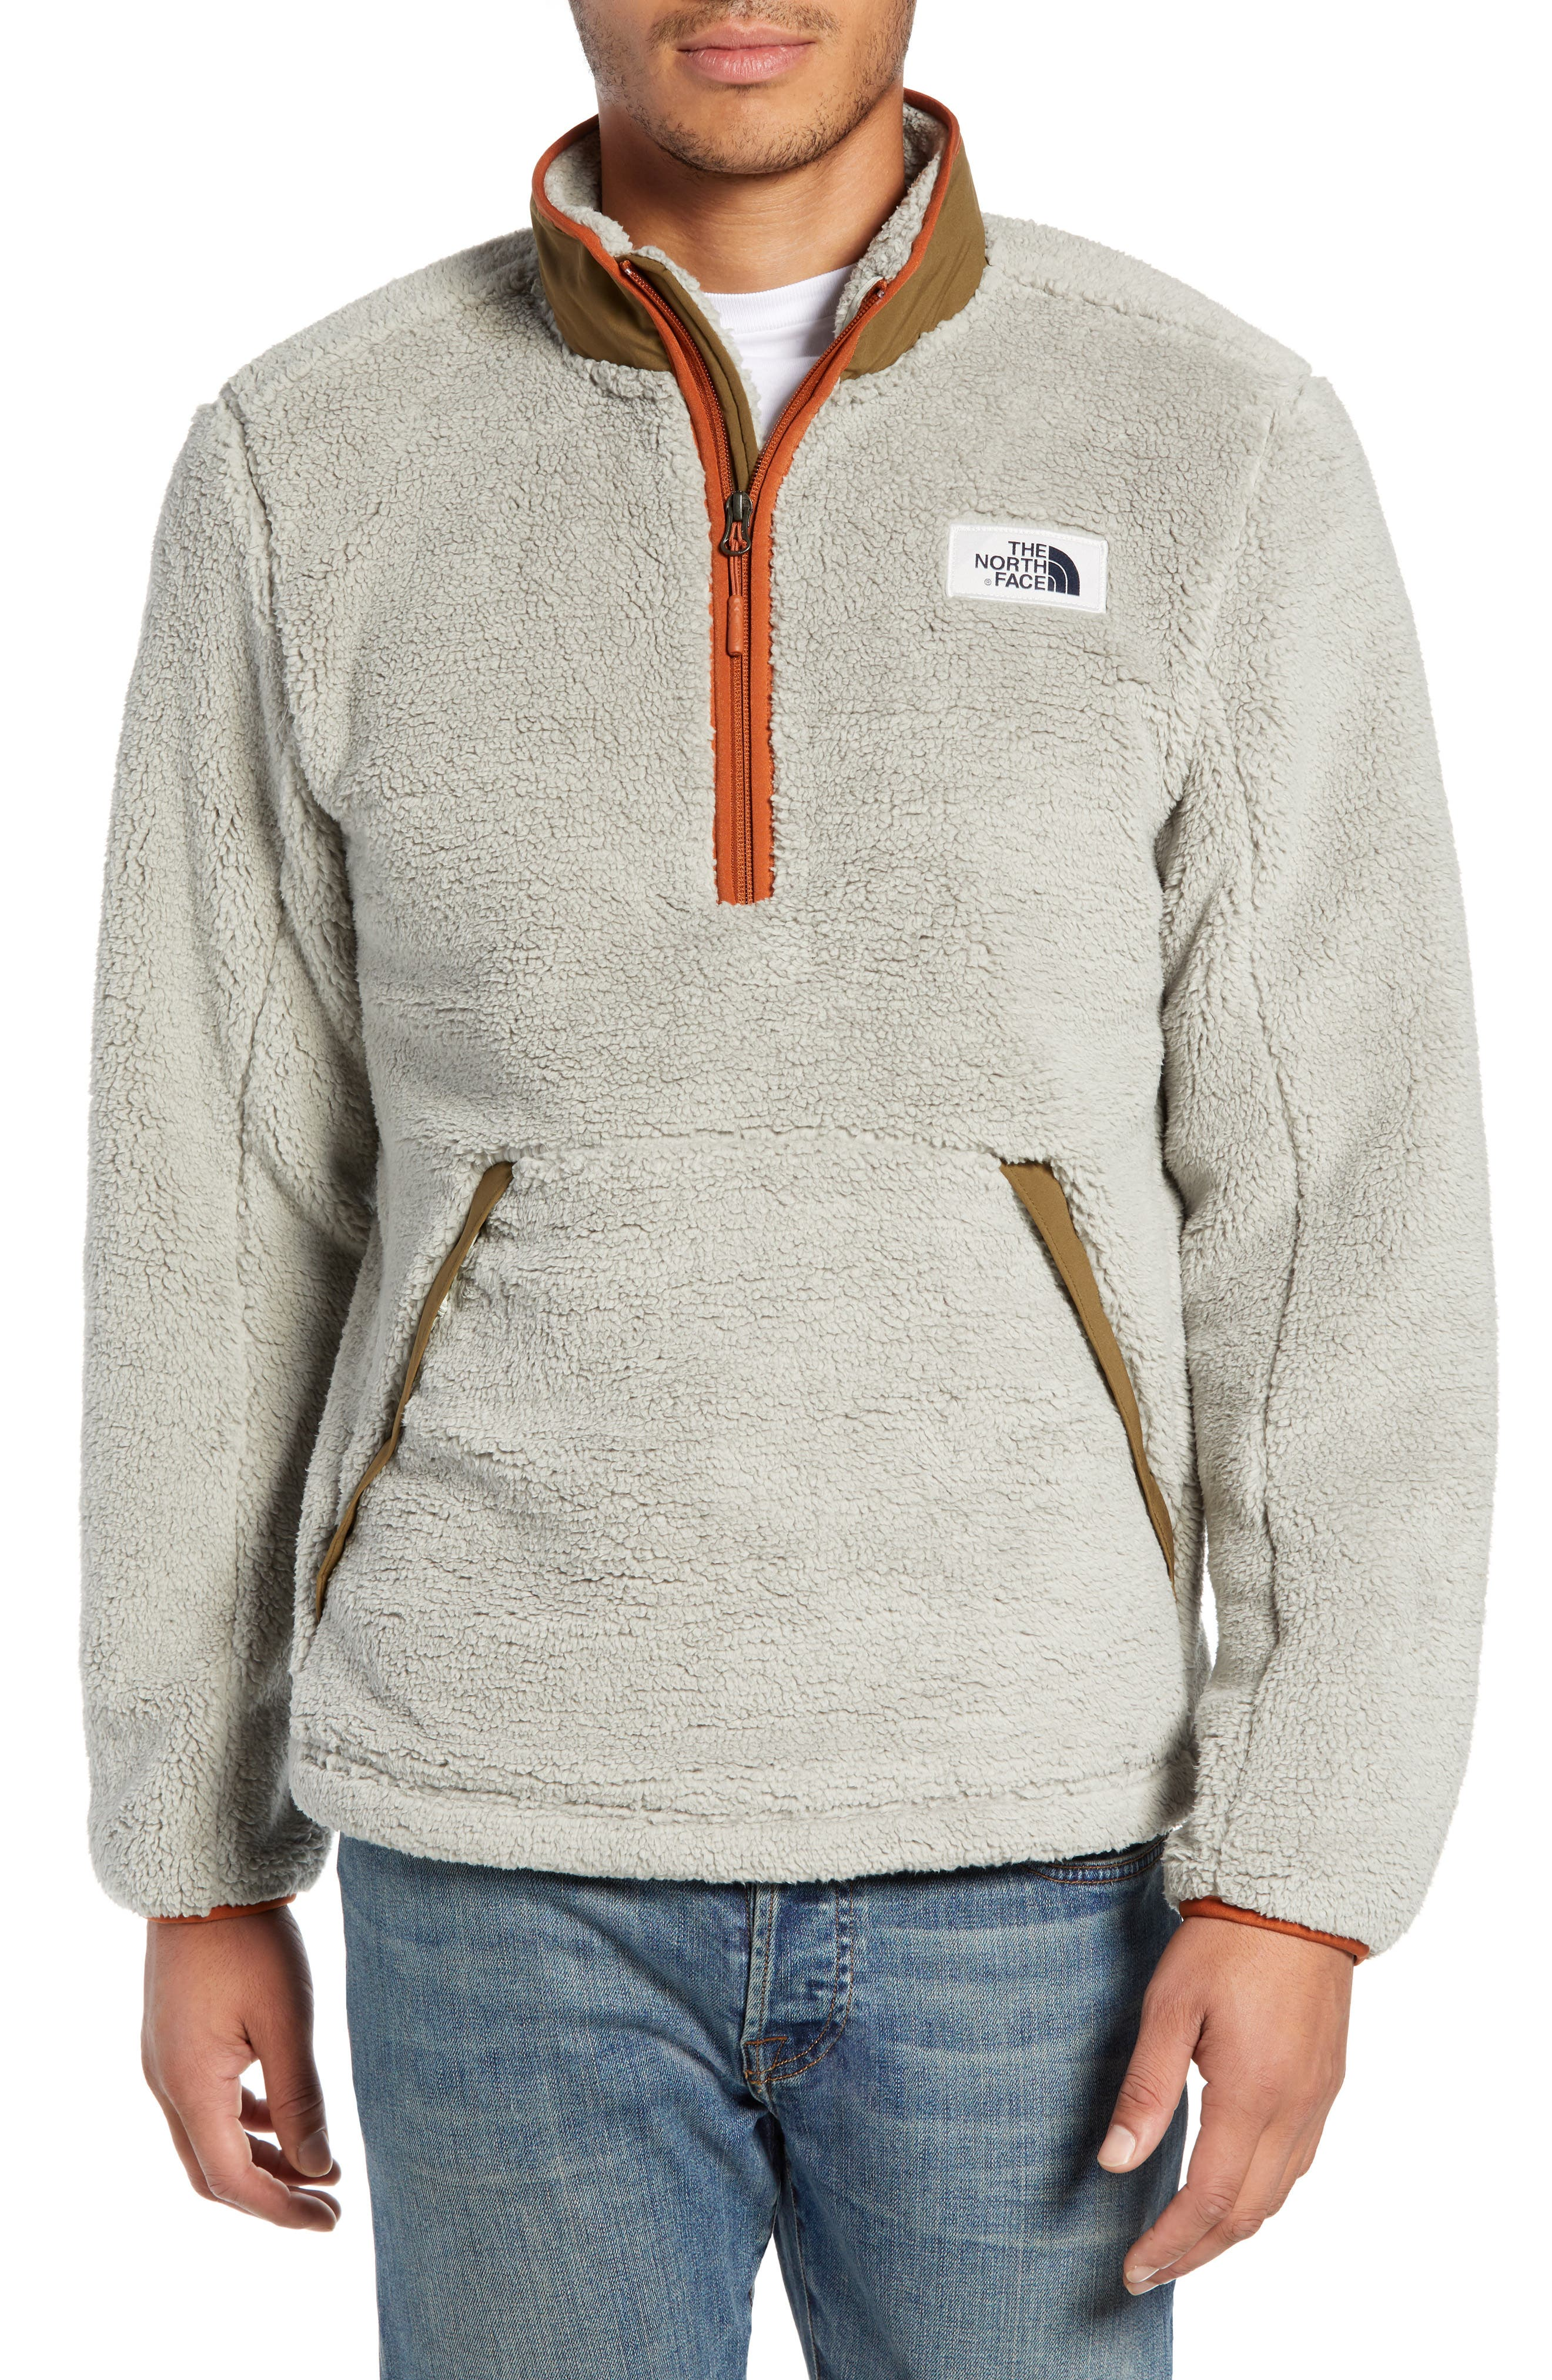 The North Face Campshire Pullover Fleece Jacket, Beige